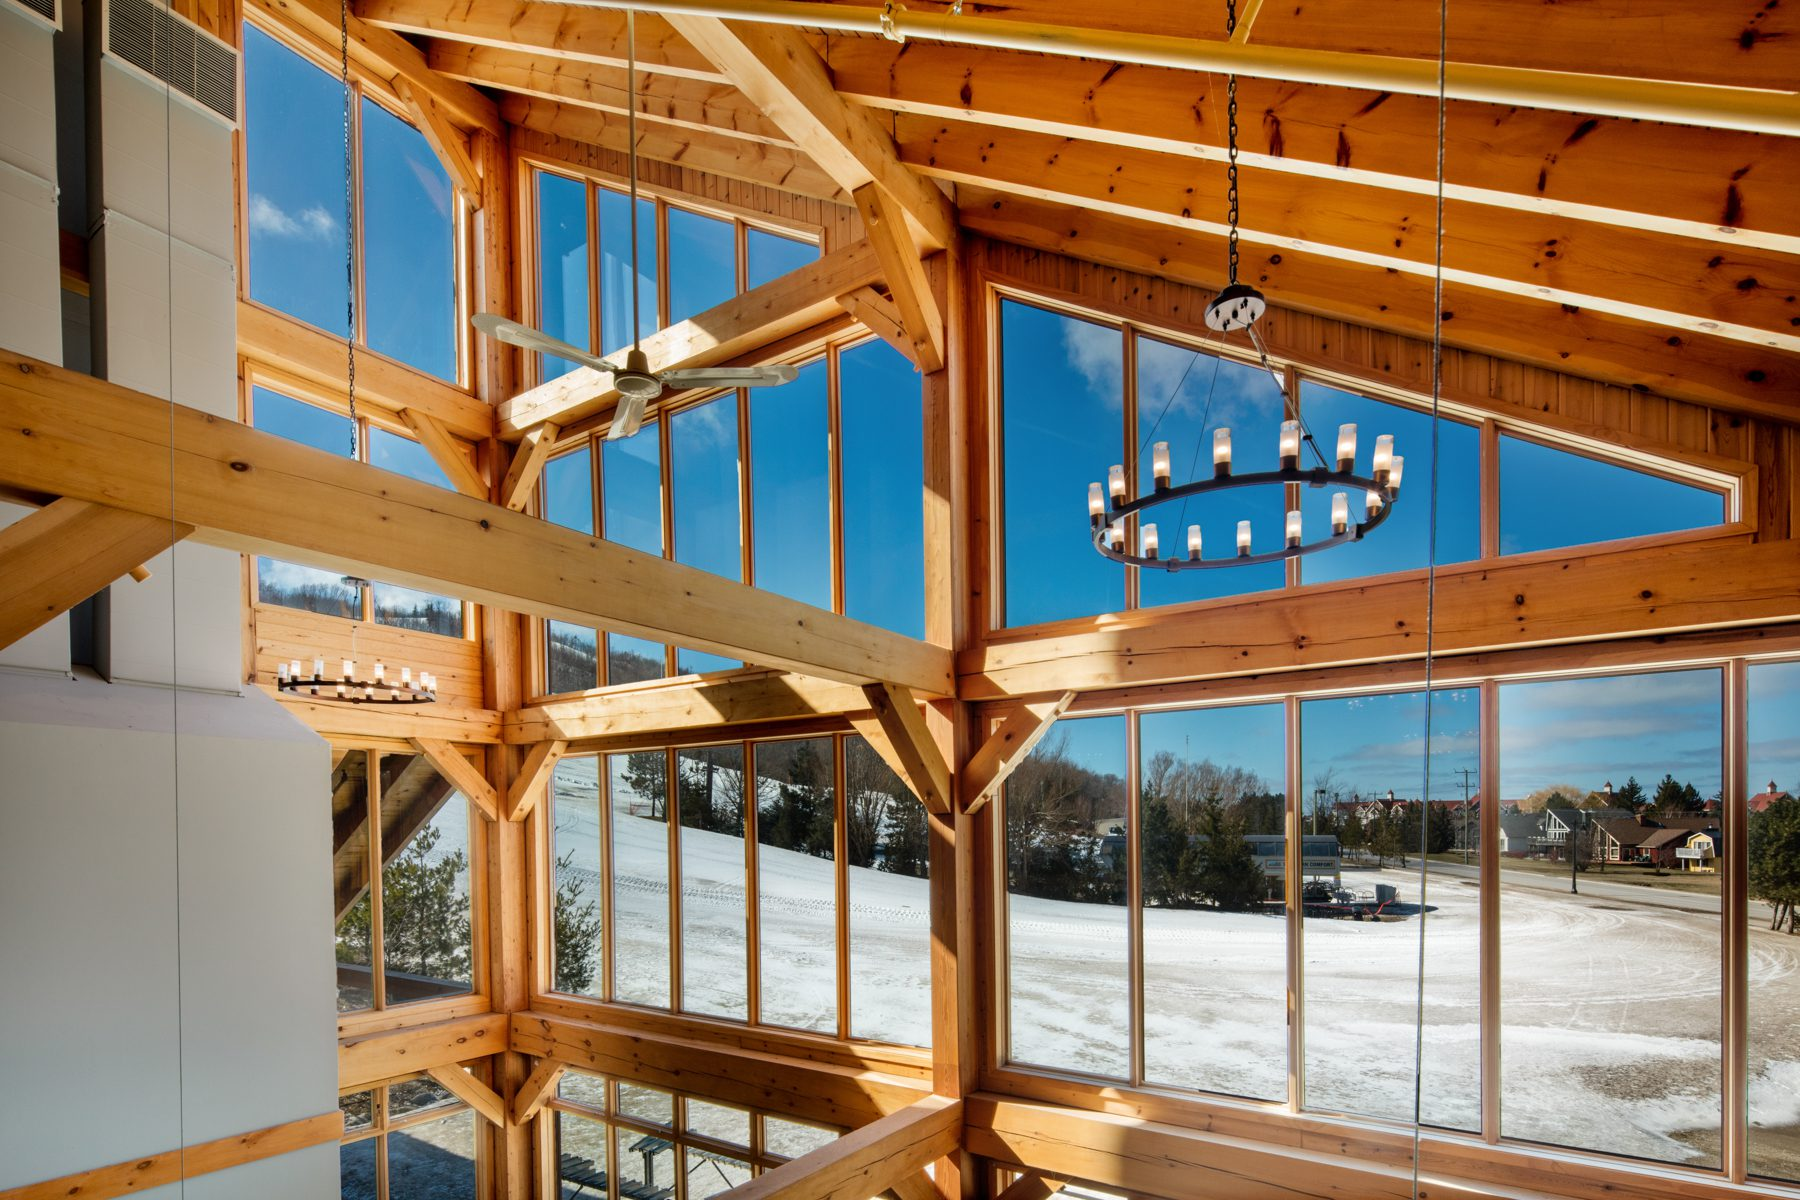 Normerica Timber Frames, Commercial Projects, Blue Mountain South Lodge, Interior, Collingwood, Ontario, Ski Resort, Clubhouse